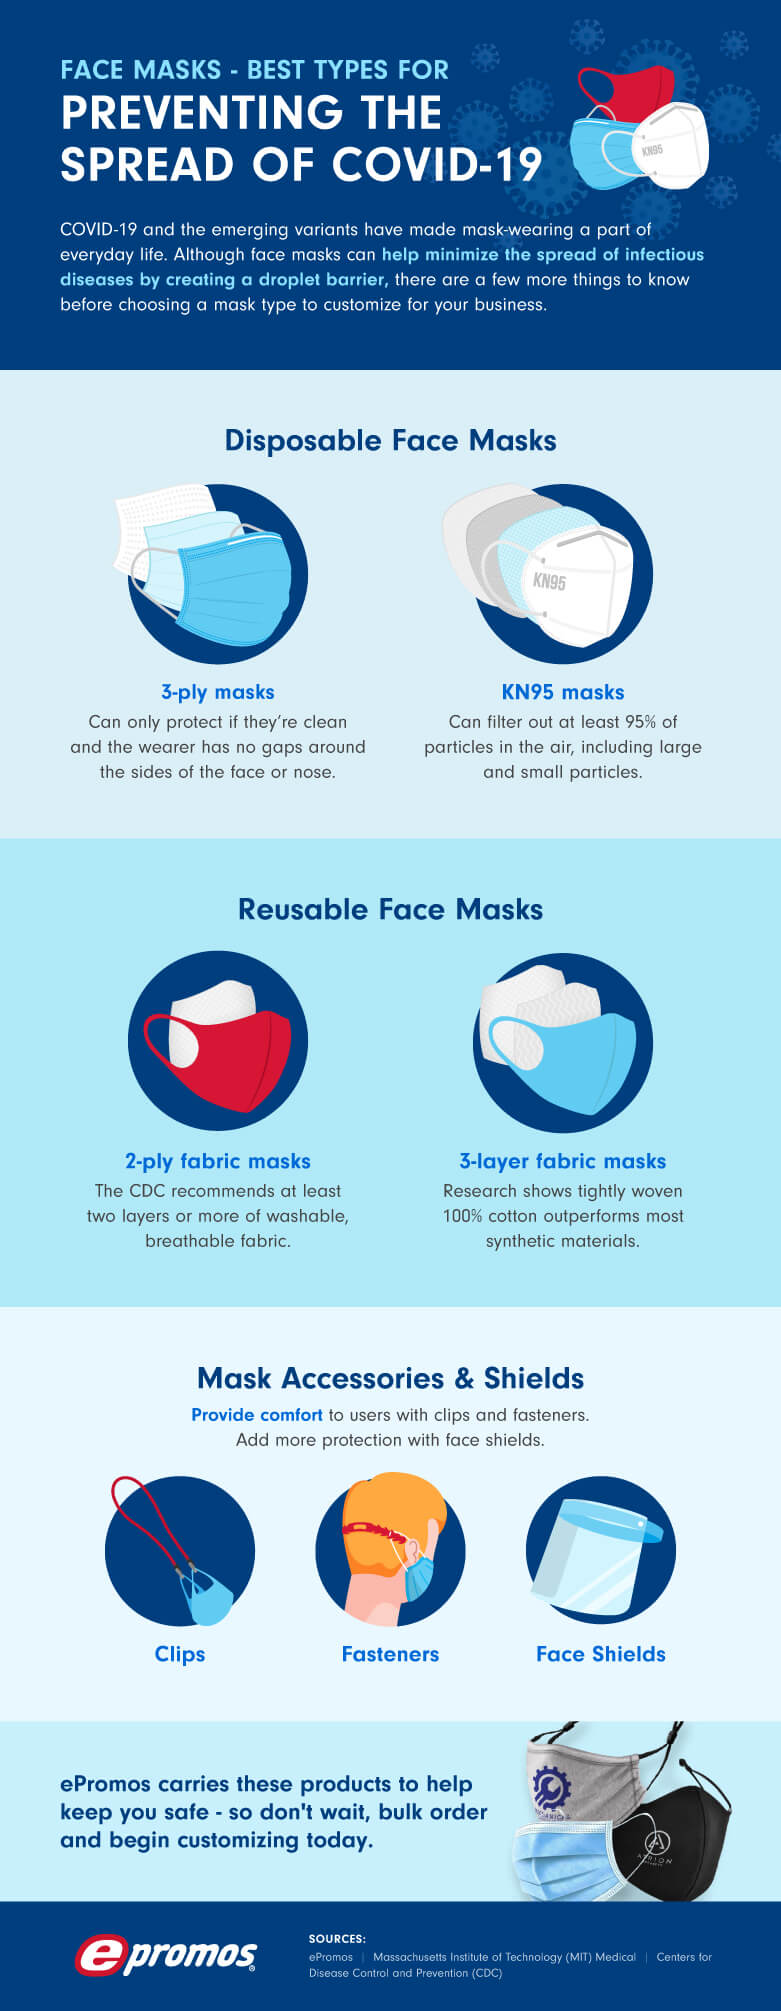 A list of face mask types and their effectiveness in helping to prevent the spread of COVID 19